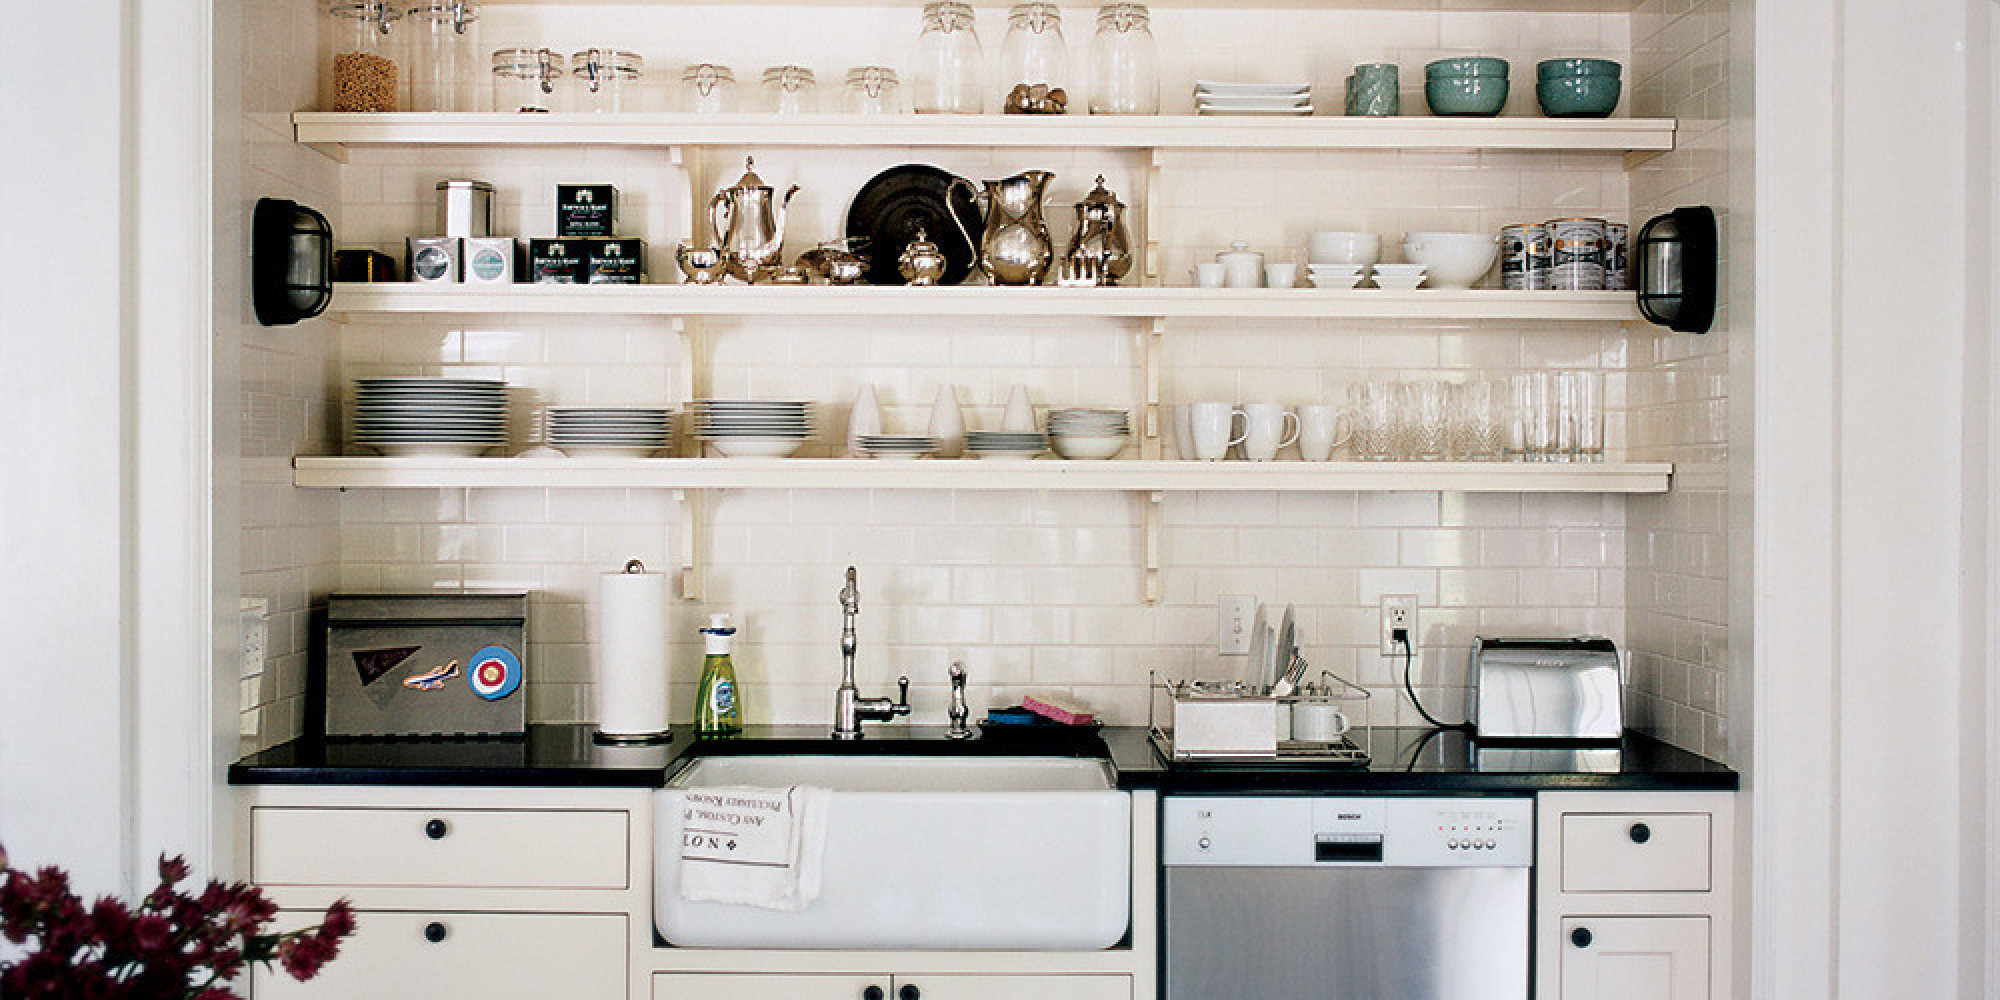 kitchen cabinets small kitchen 7 ways to get the most out of a tiny kitchen huffpost 21195